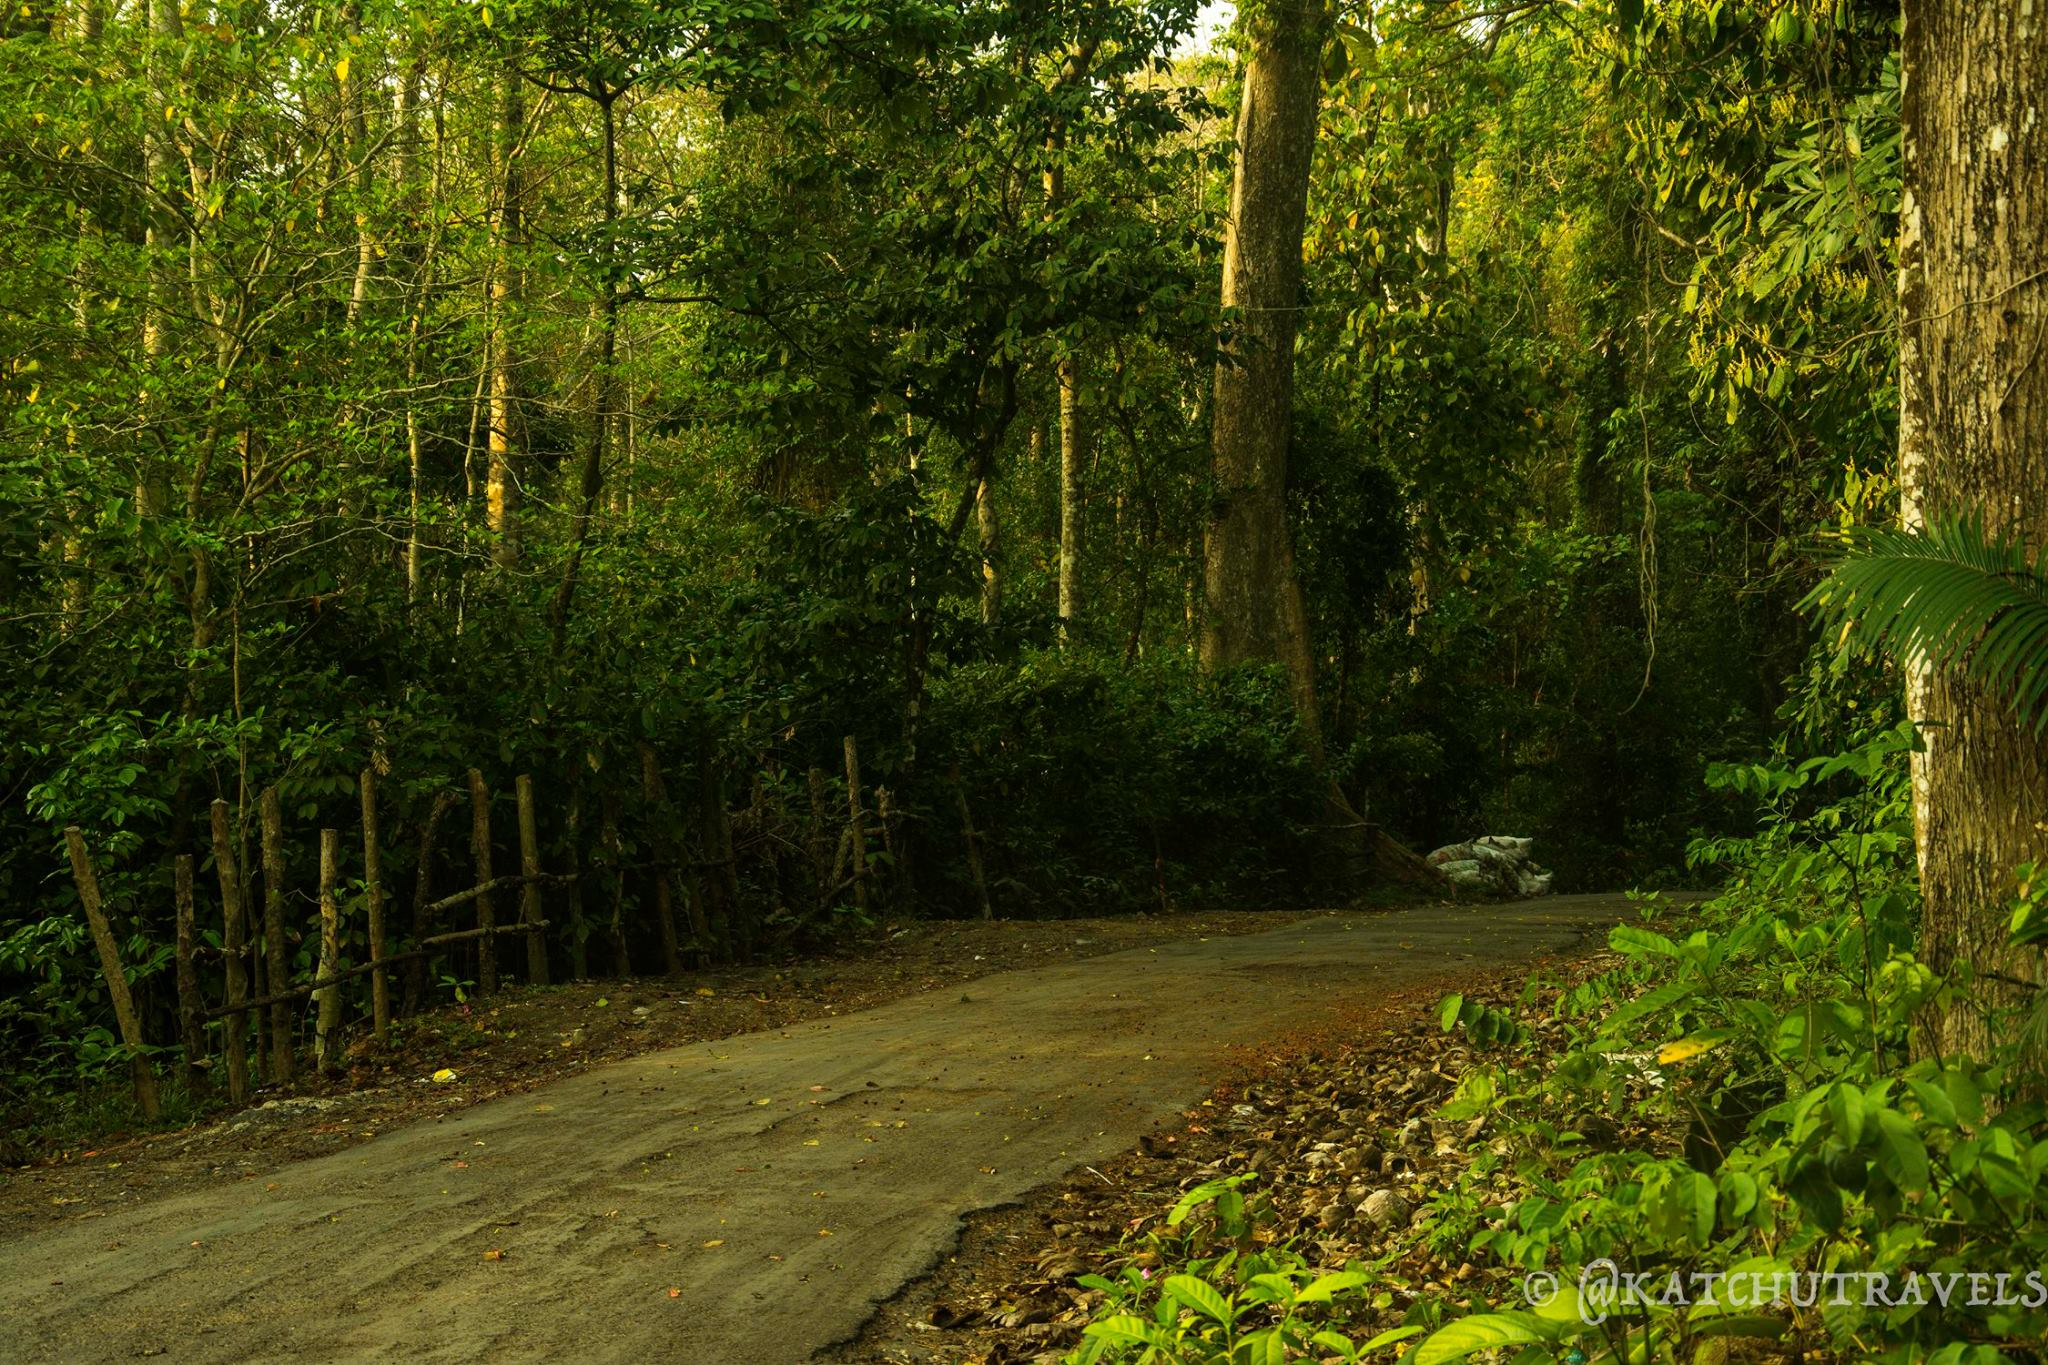 Driving through the Woods-Havelock Island